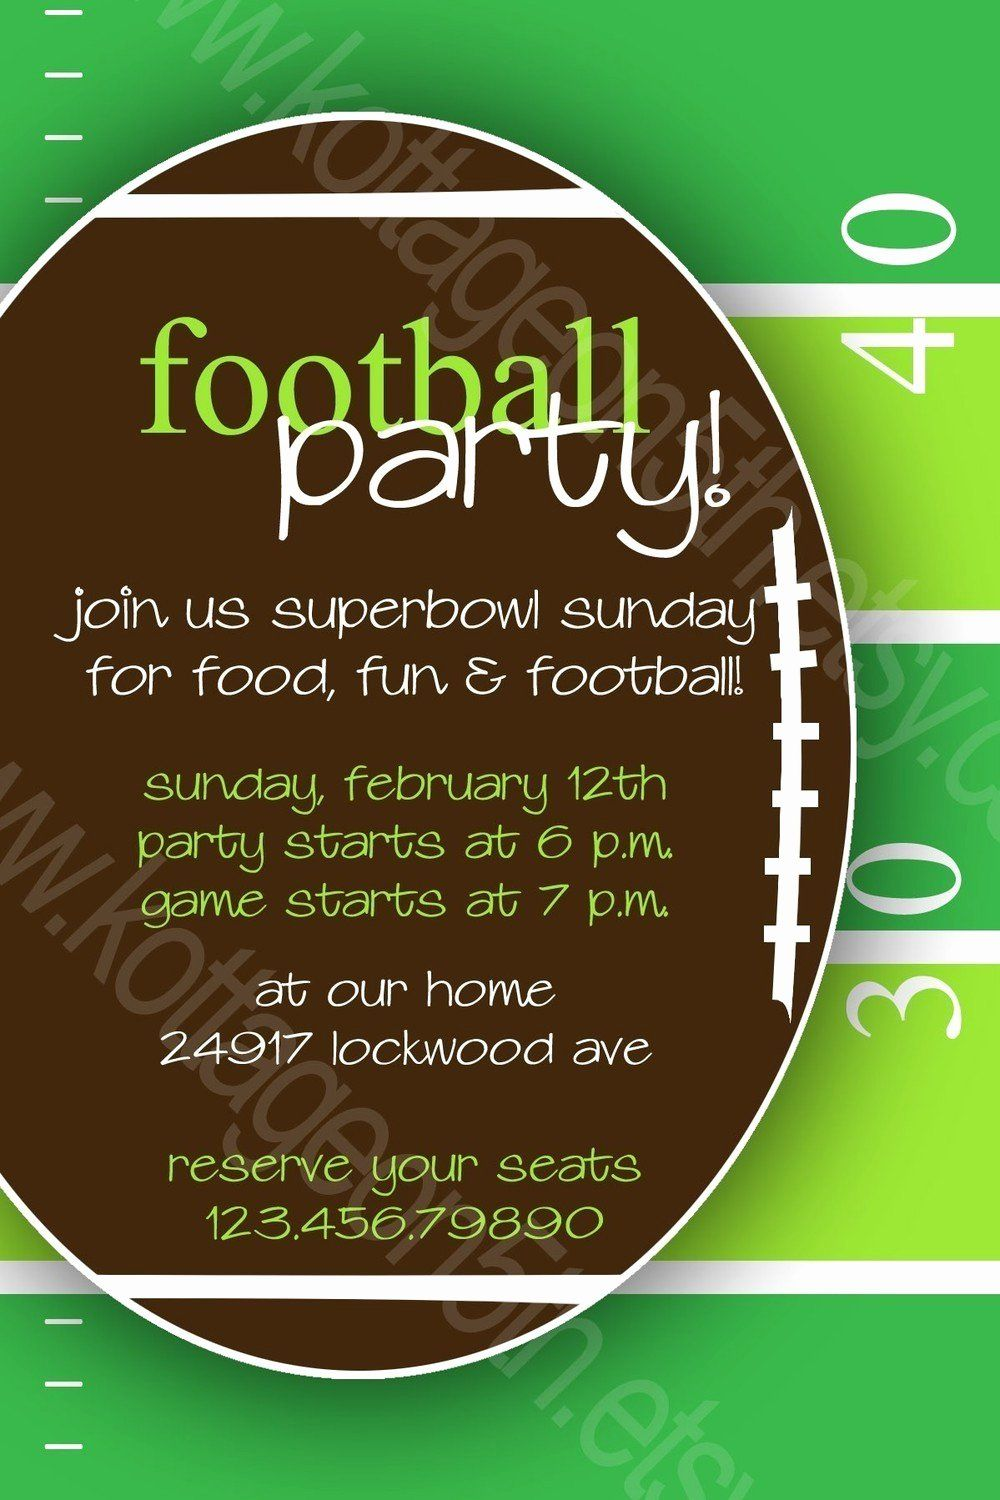 Superbowl Party Invitation Template Best Of Super Bowl Party